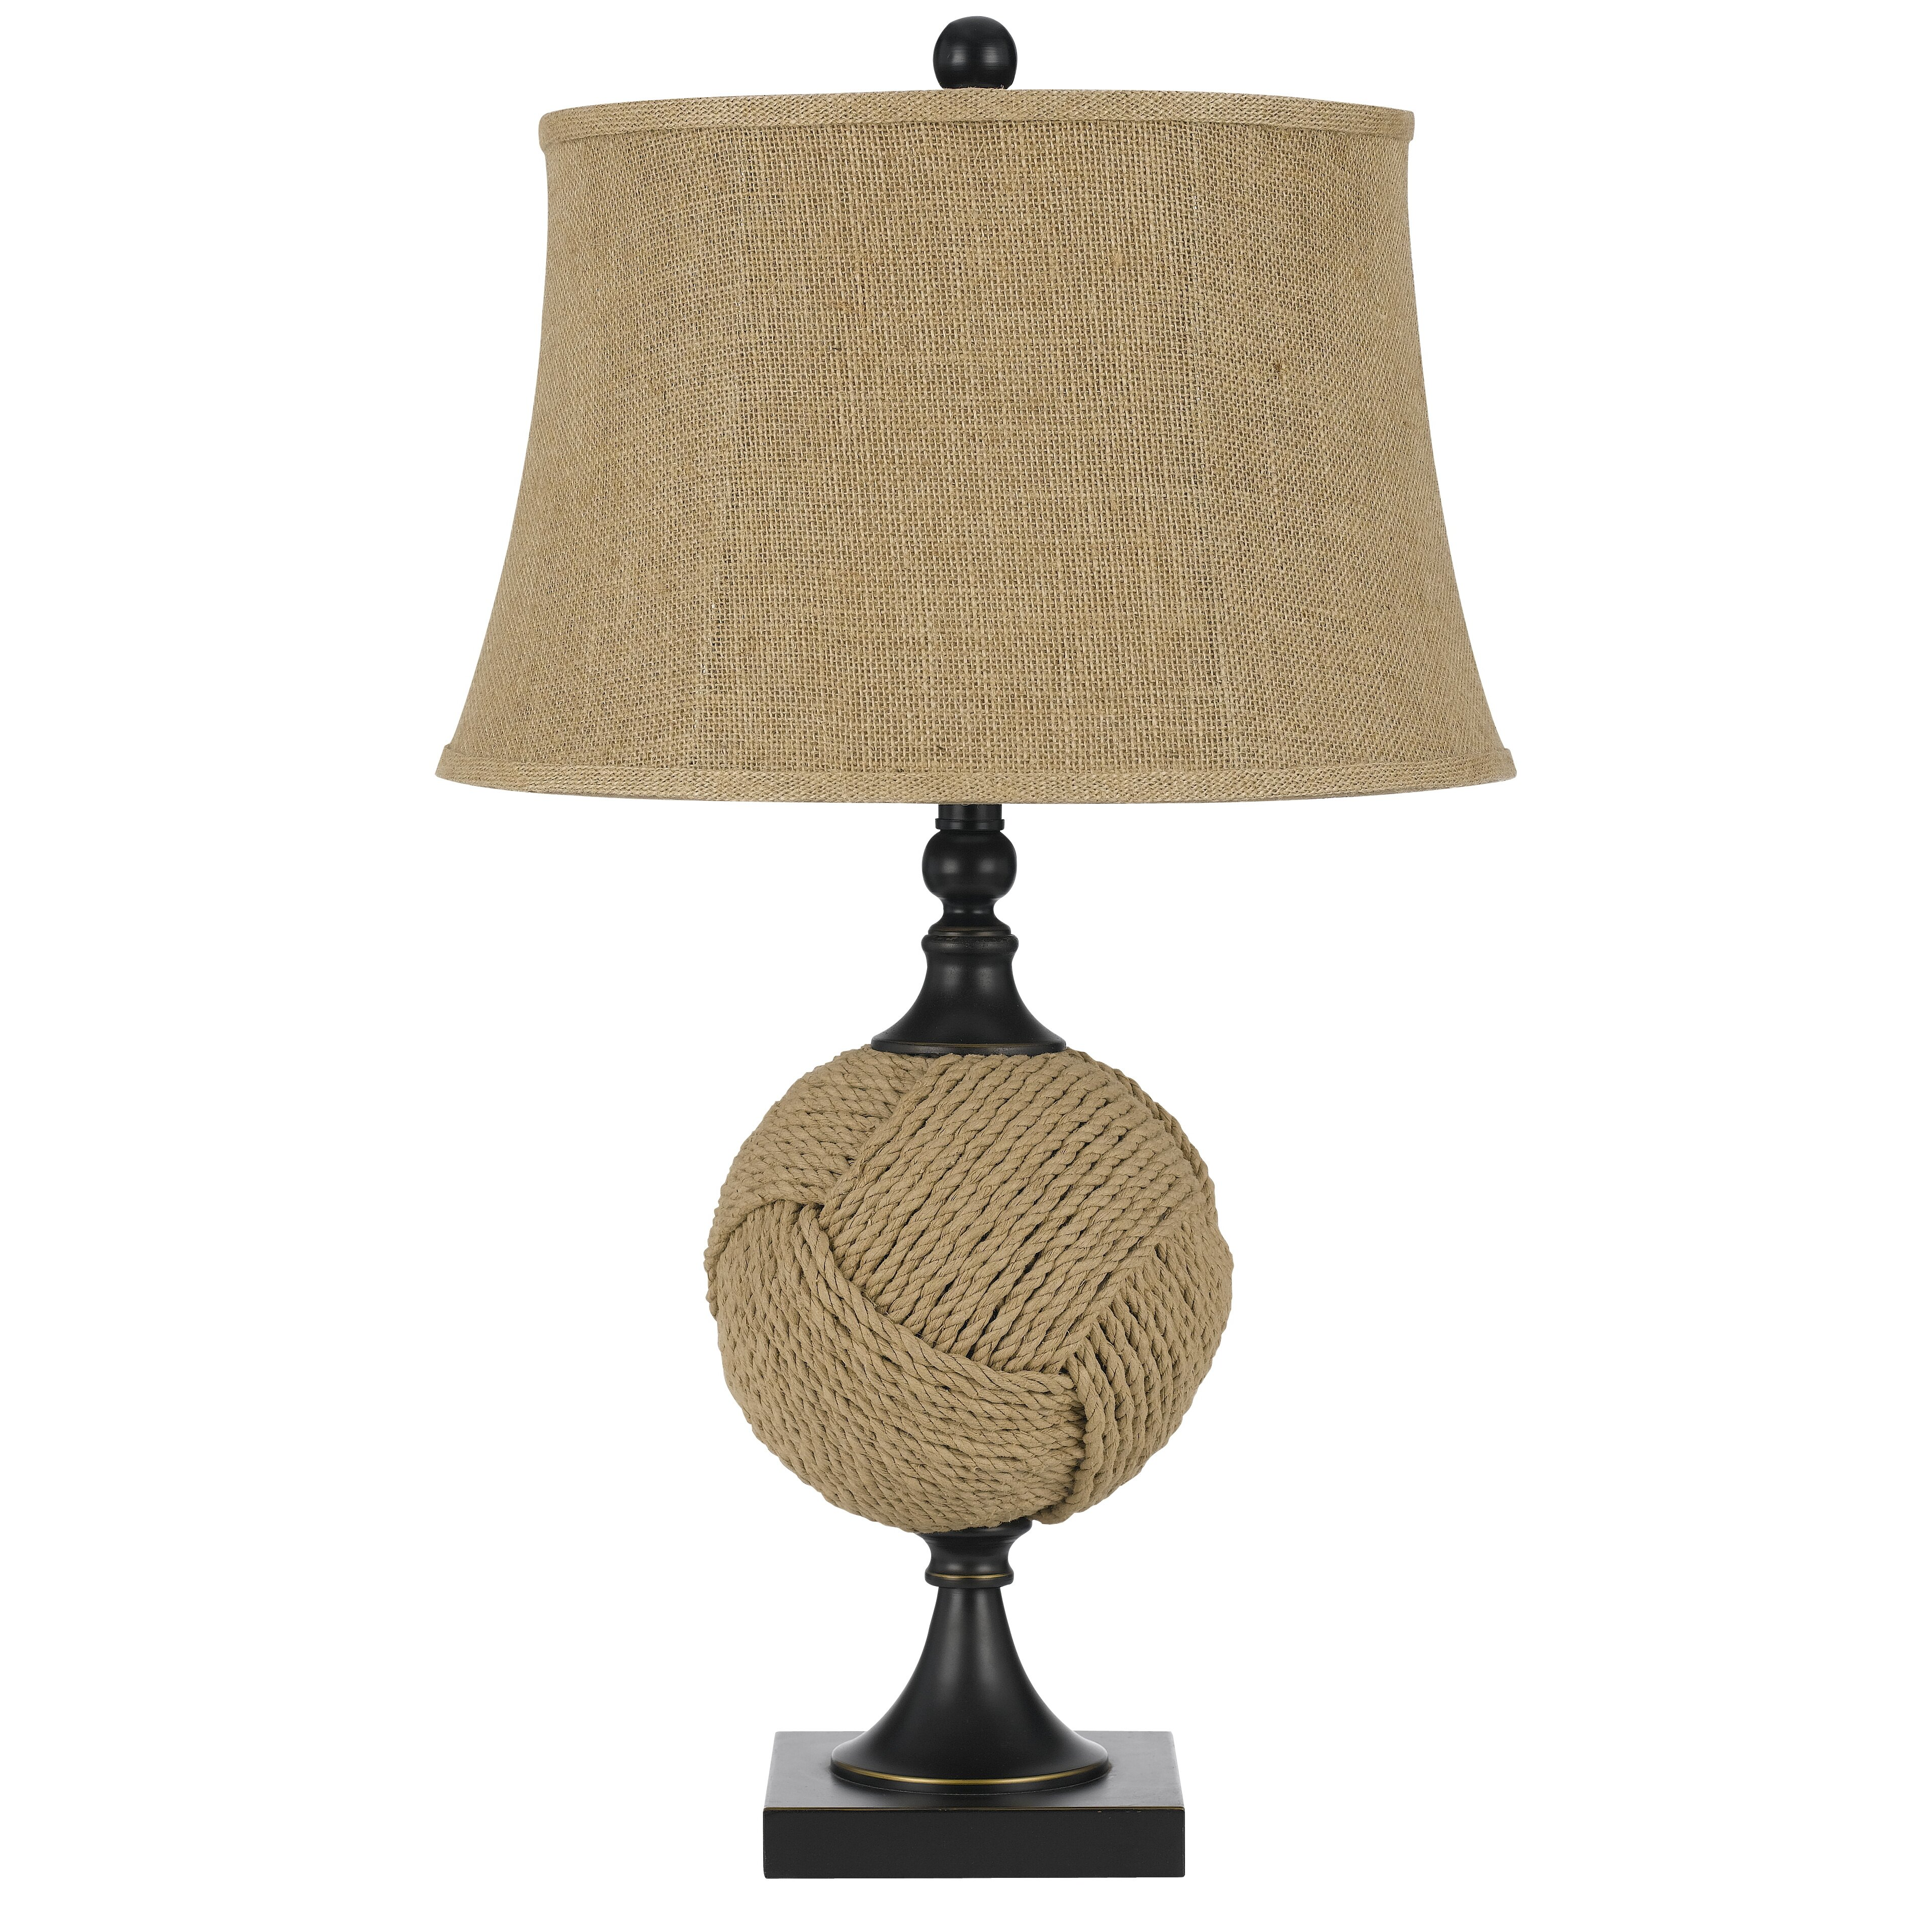 lighting lamps table lamps cal lighting sku cg2277. Black Bedroom Furniture Sets. Home Design Ideas